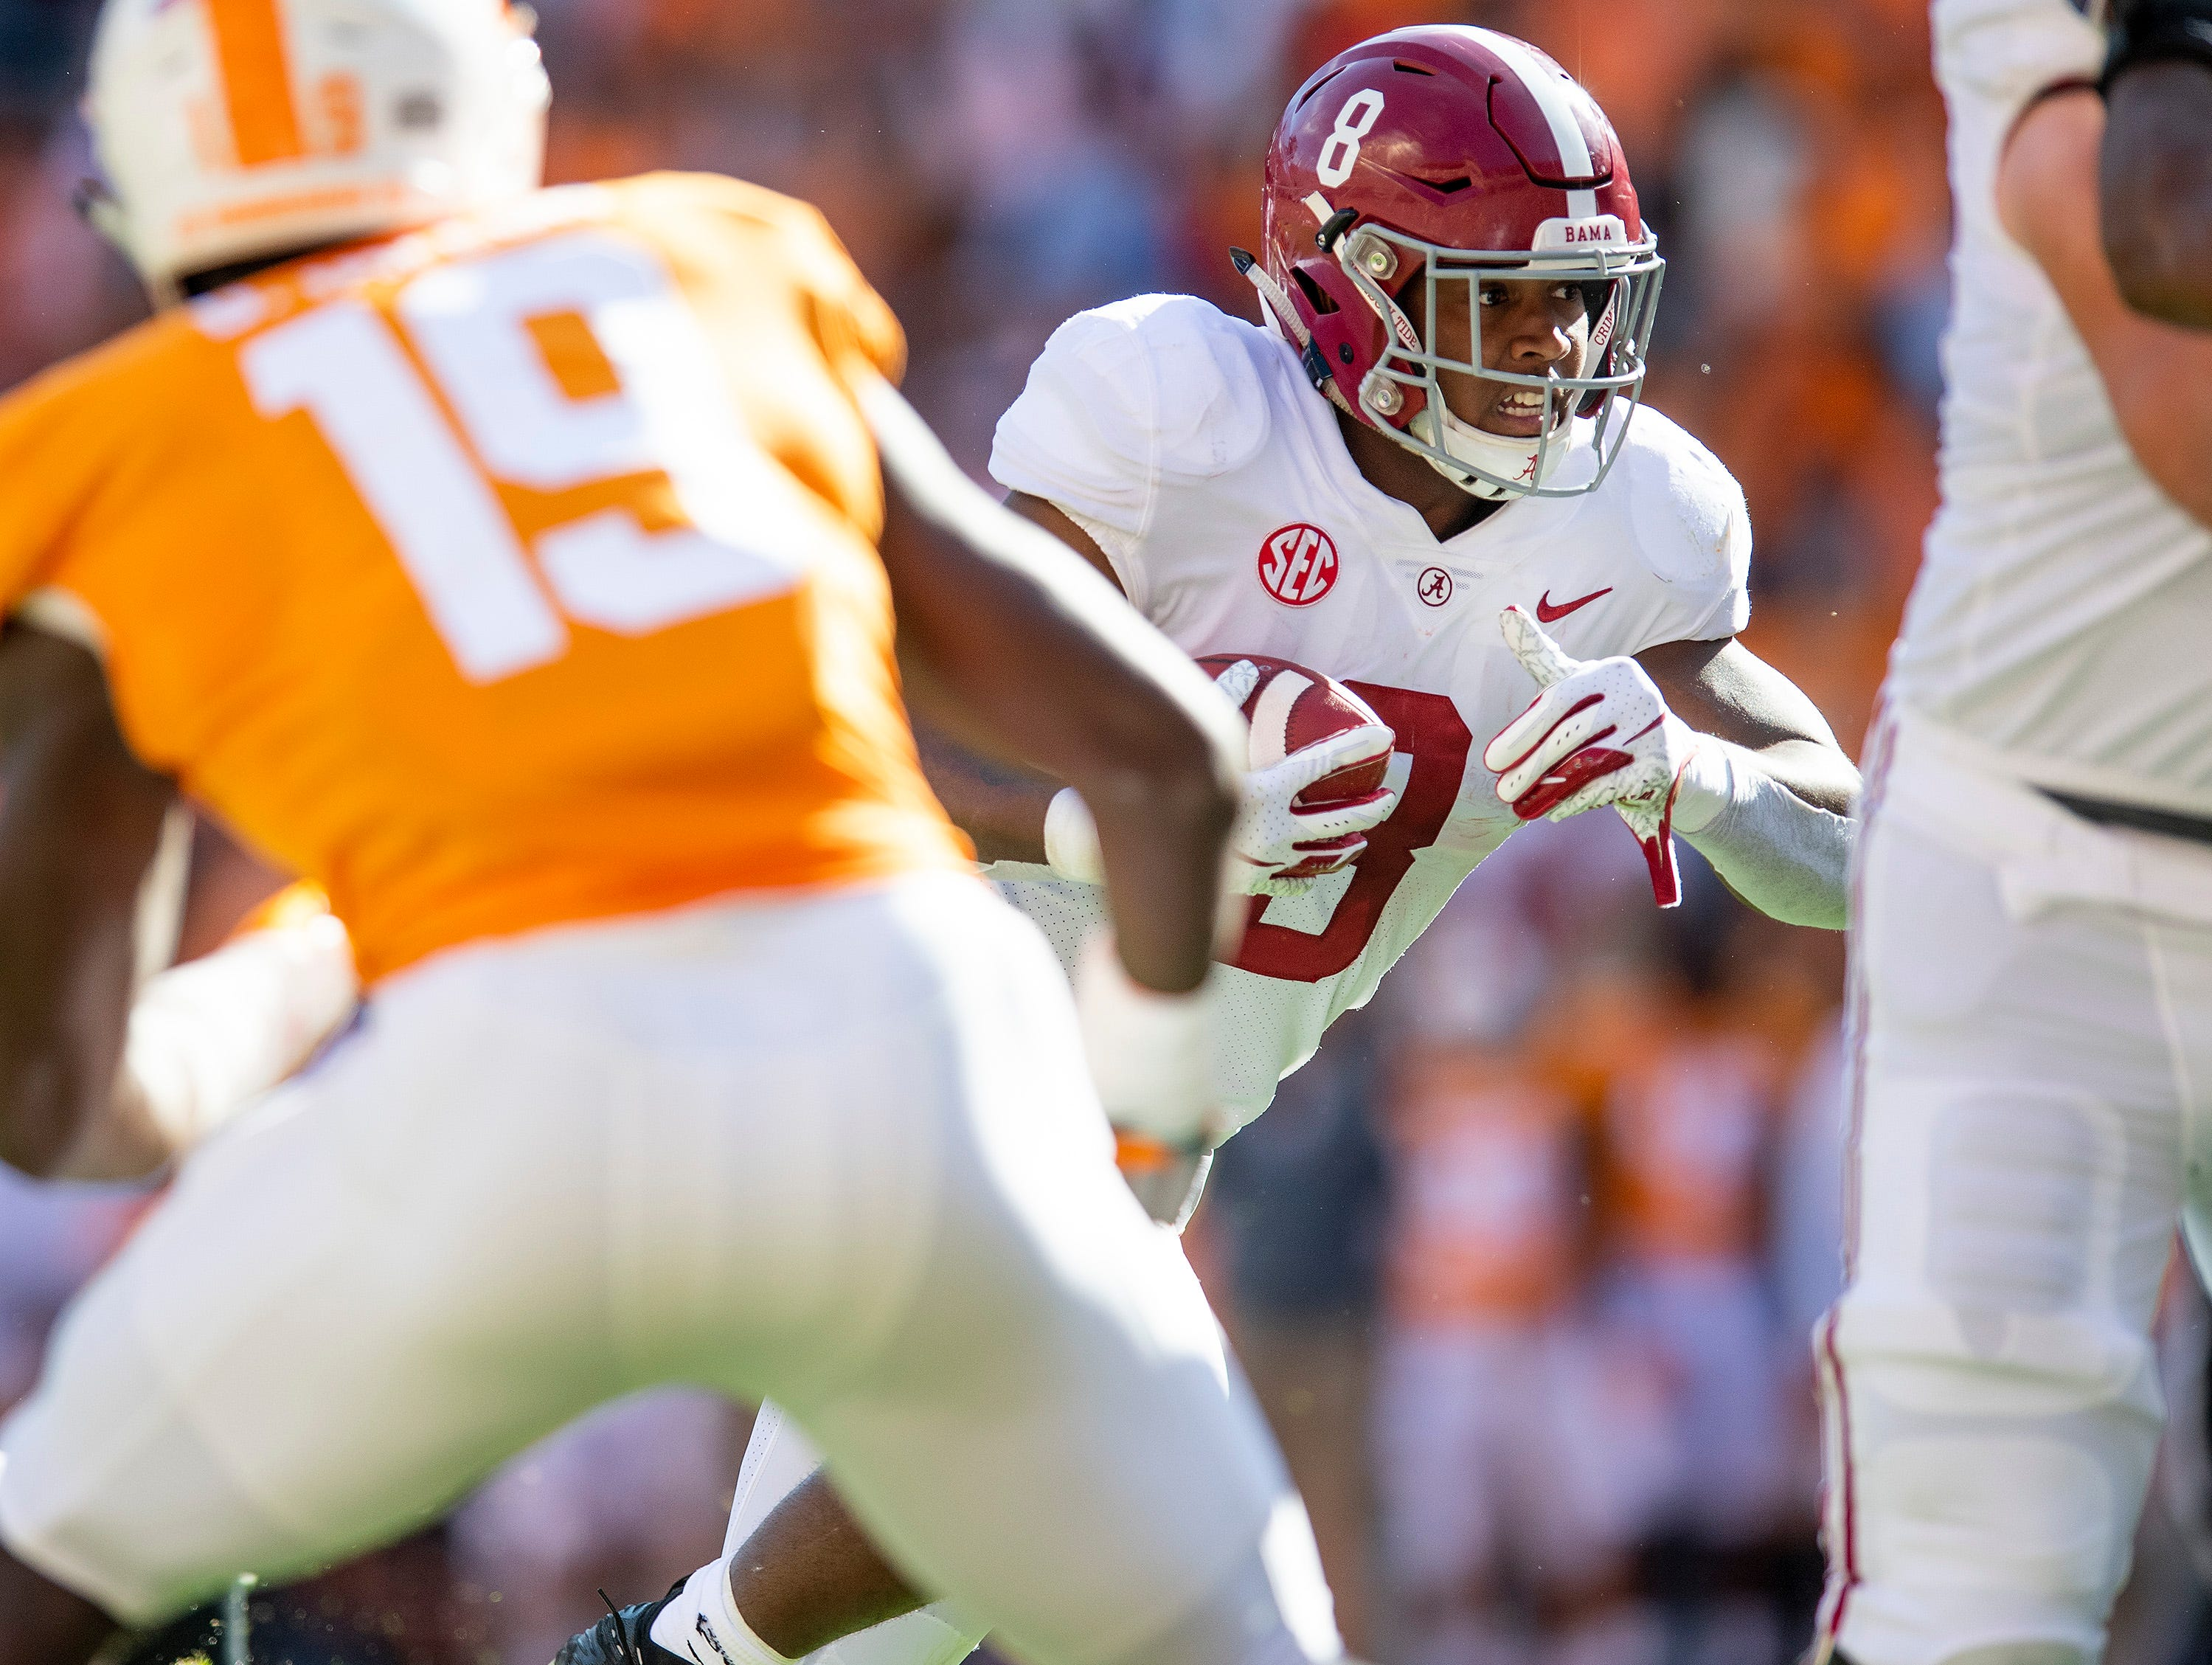 Alabama running back Josh Jacobs (8) carries the ball for a touchdown against Tennessee in first half action at Neyland Stadium in Knoxville, Tn., on Saturday October 20, 2018.